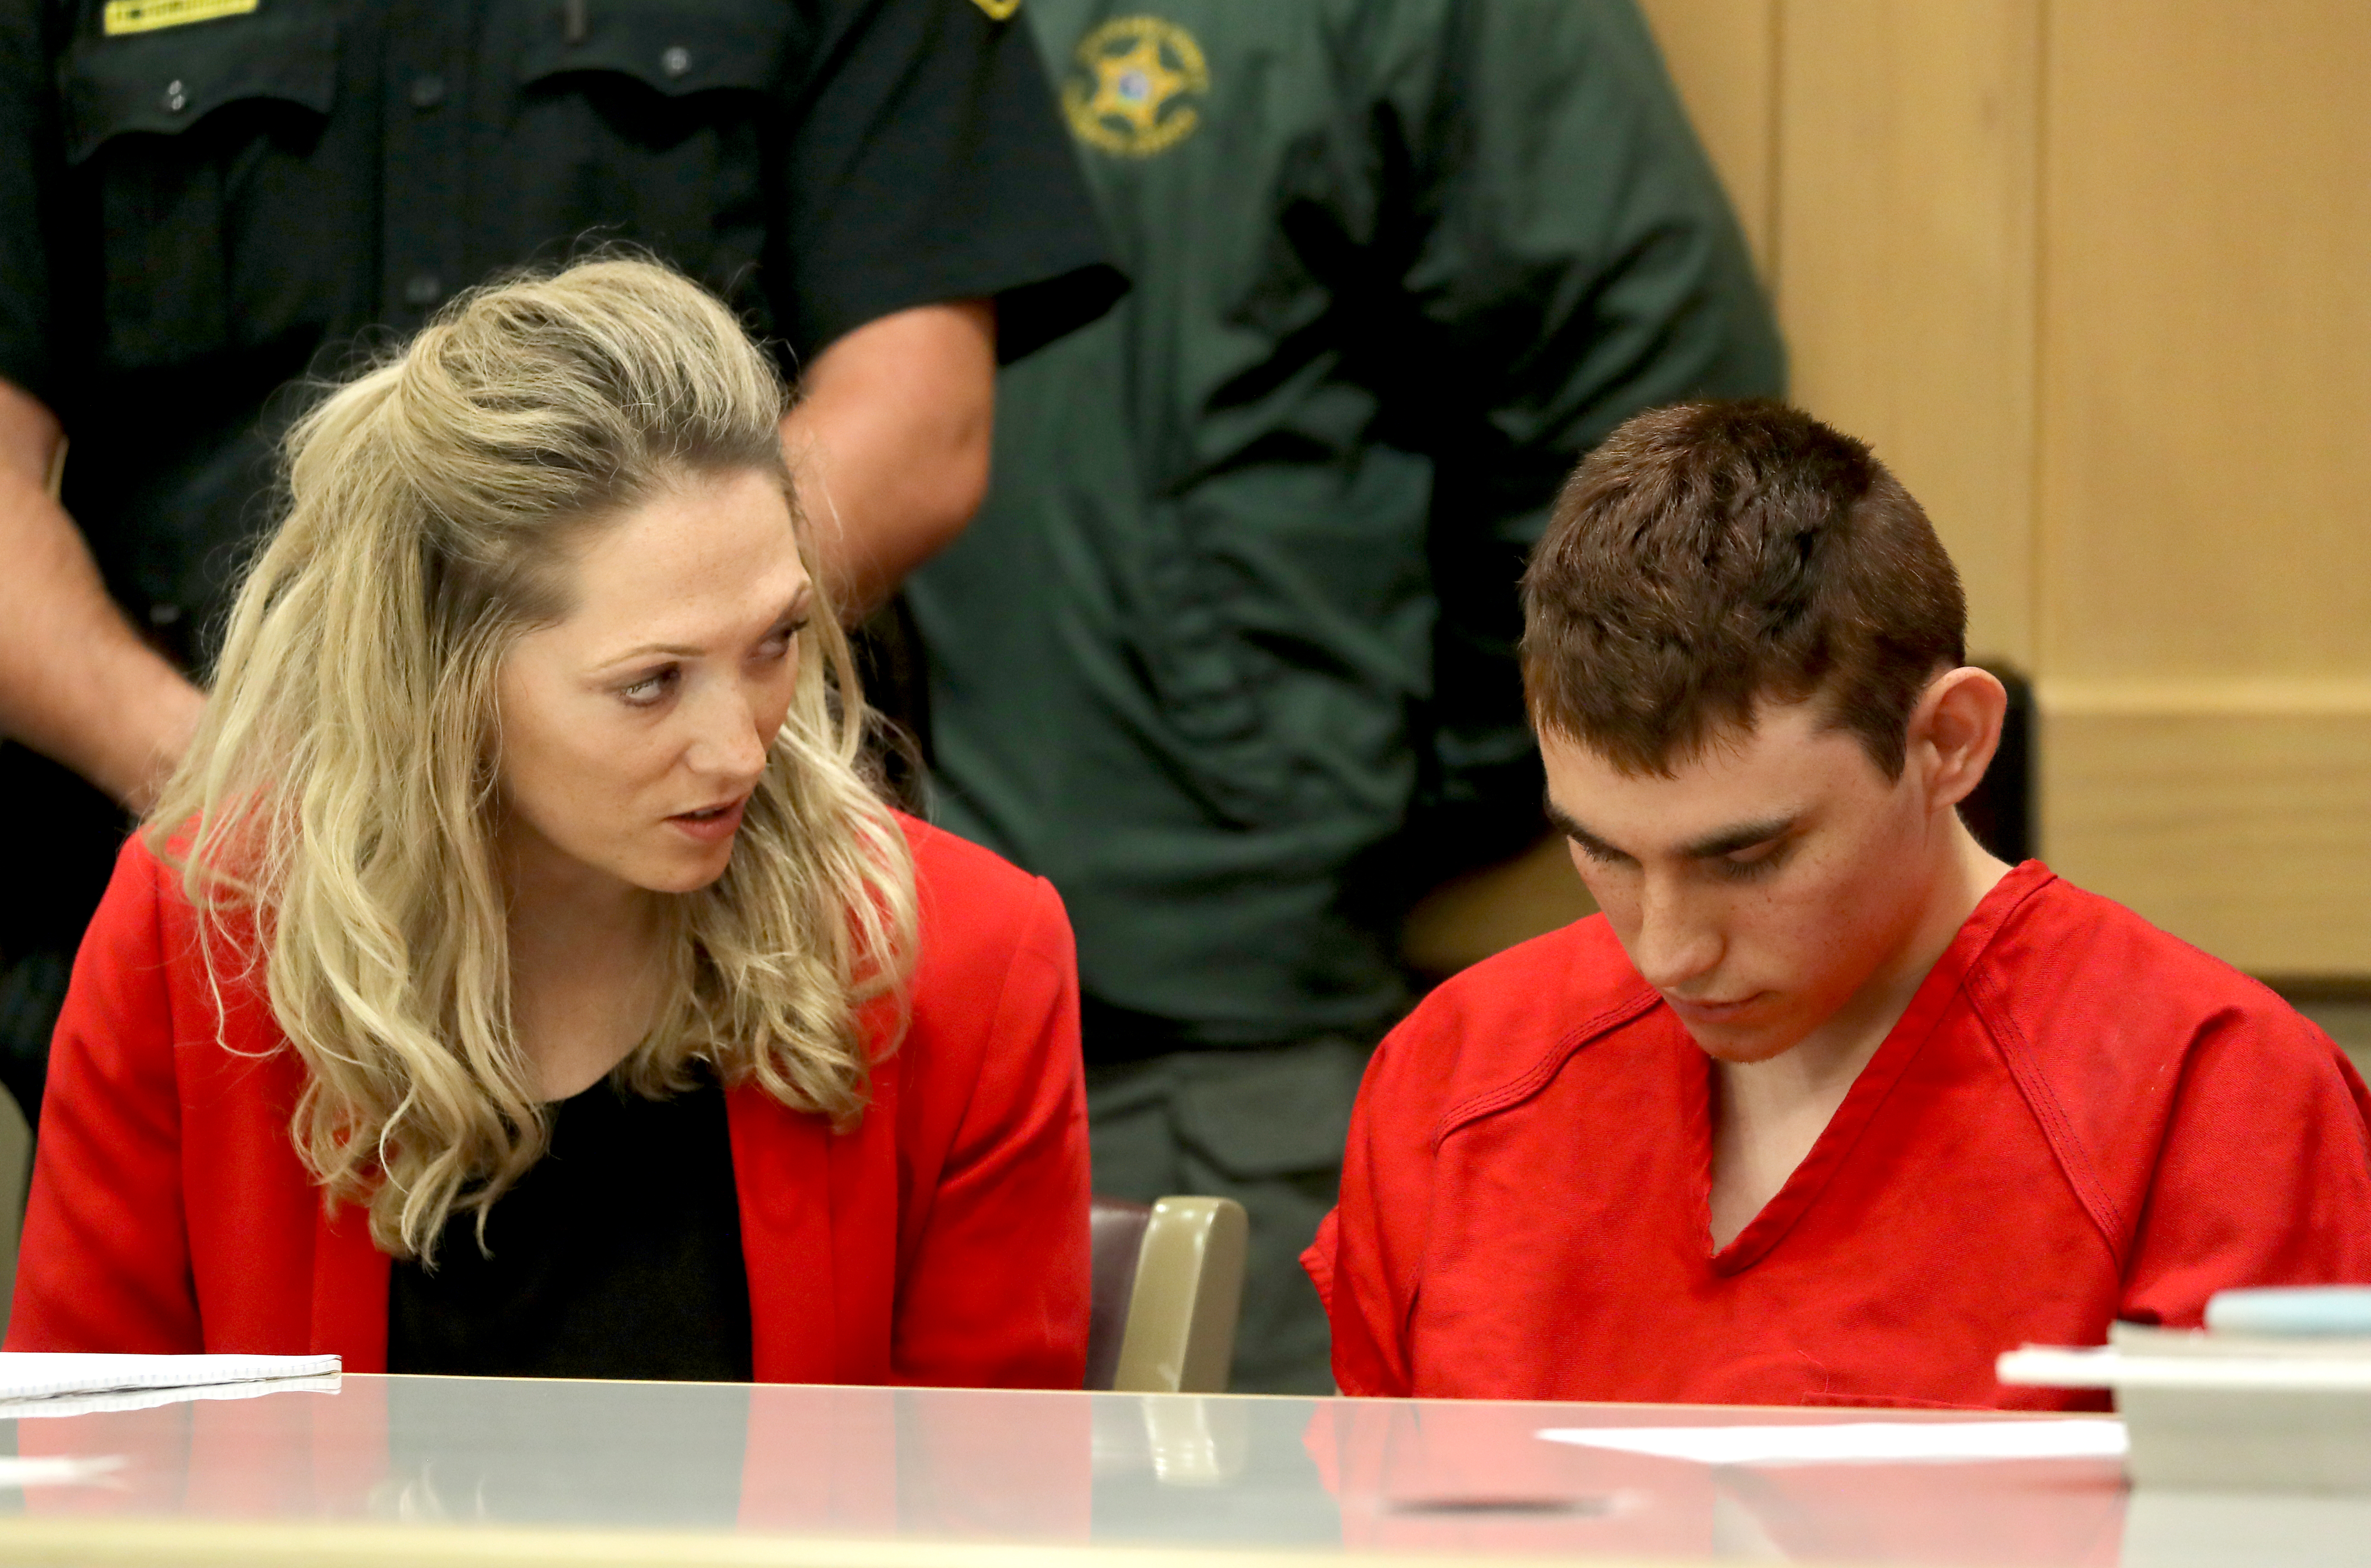 Nikolas Cruz appears in court for a status hearing before Broward Circuit Judge Elizabeth Scherer on February 19, 2018 in Ft. Lauderdale, Florida. Cruz is facing 17 charges of premeditated murder in the mass shooting at Marjory Stoneman Douglas High School in Parkland, Florida. (Getty Images)